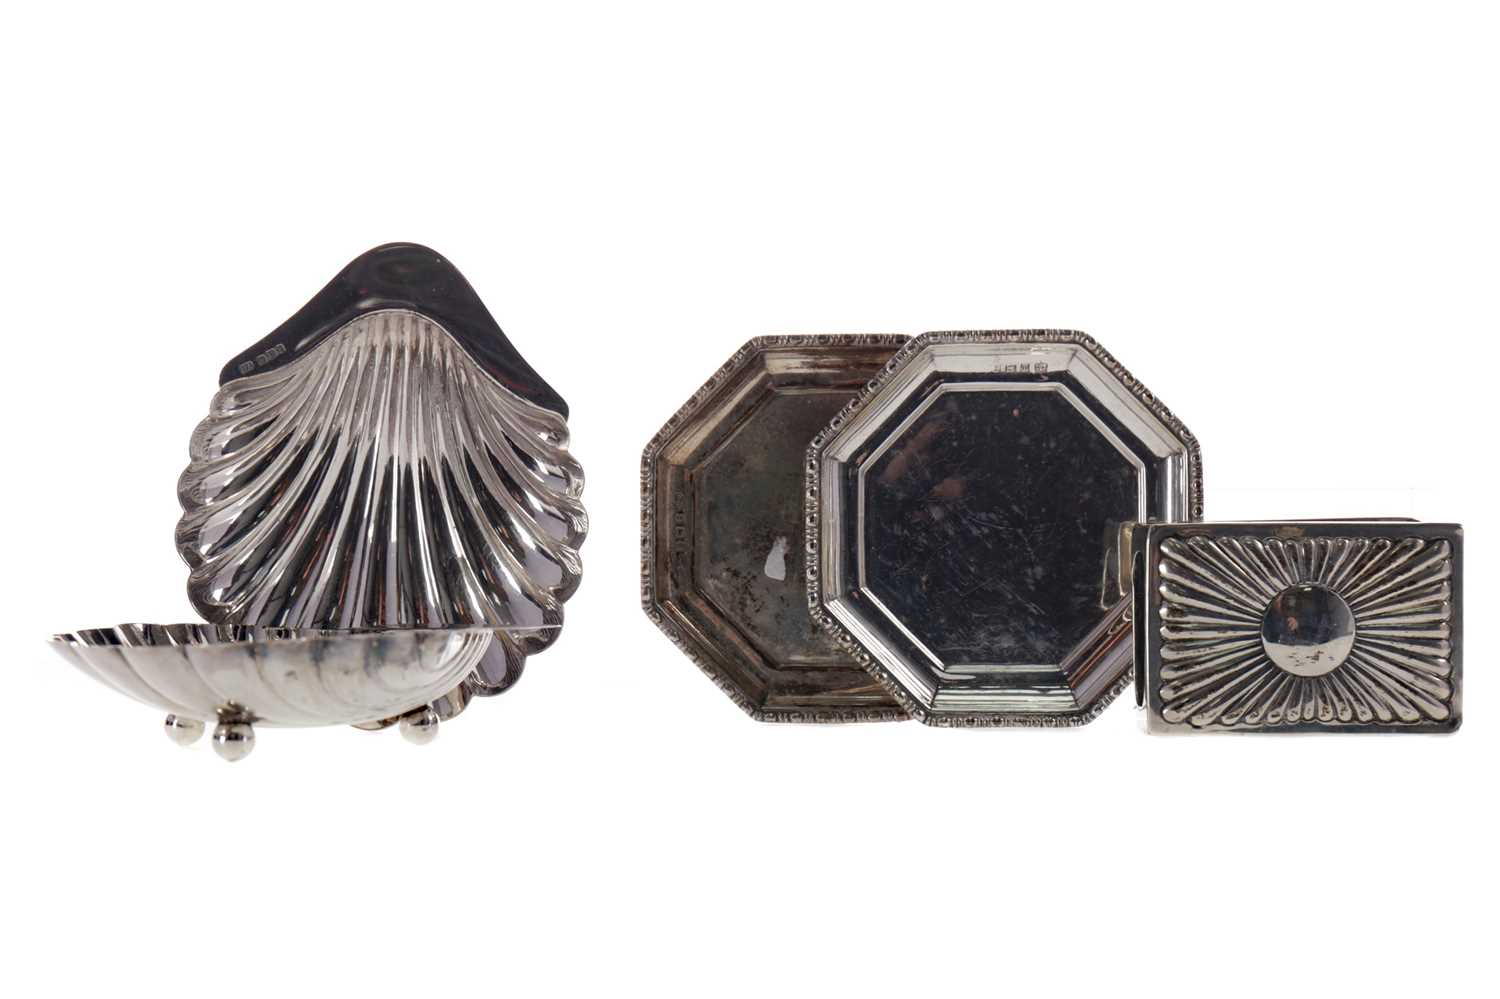 Lot 451 - A PAIR OF SILVER BUTTER DISHES, A VEST CASE HOLDER AND ANOTHER PAIR OF DISHES